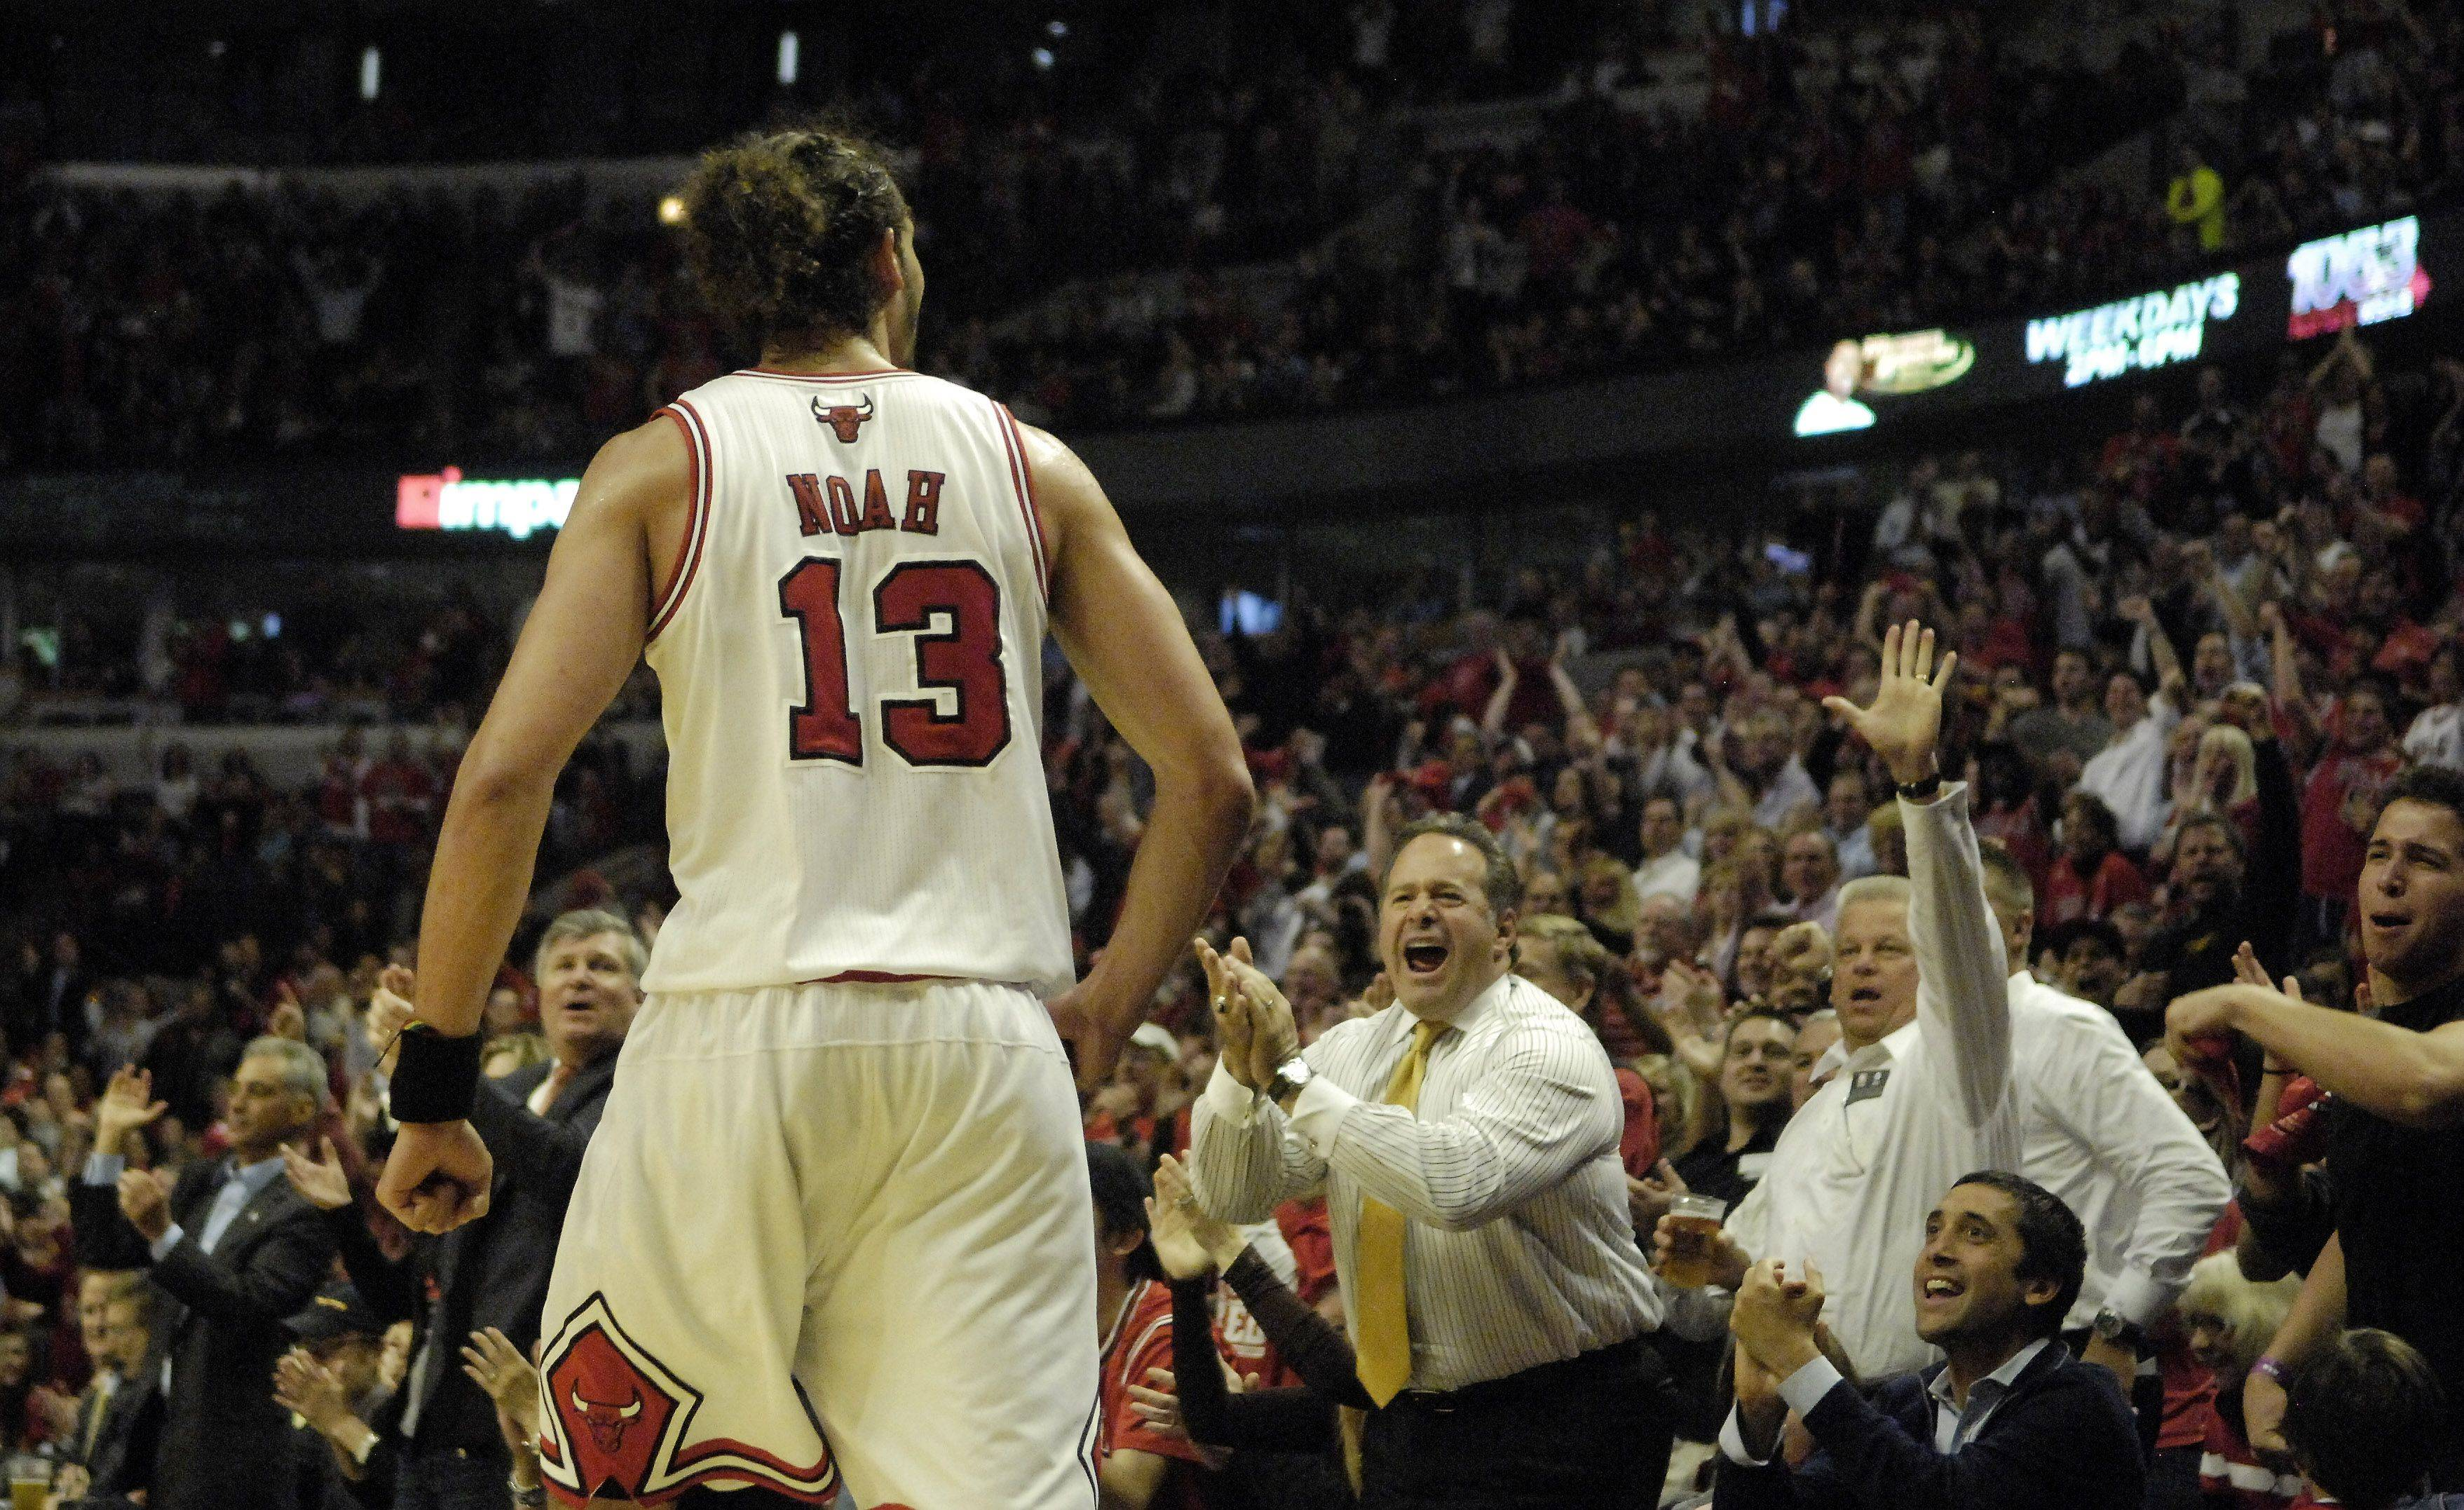 Fans cheer for Bulls center Joakim Noah in Chicago Tuesday.